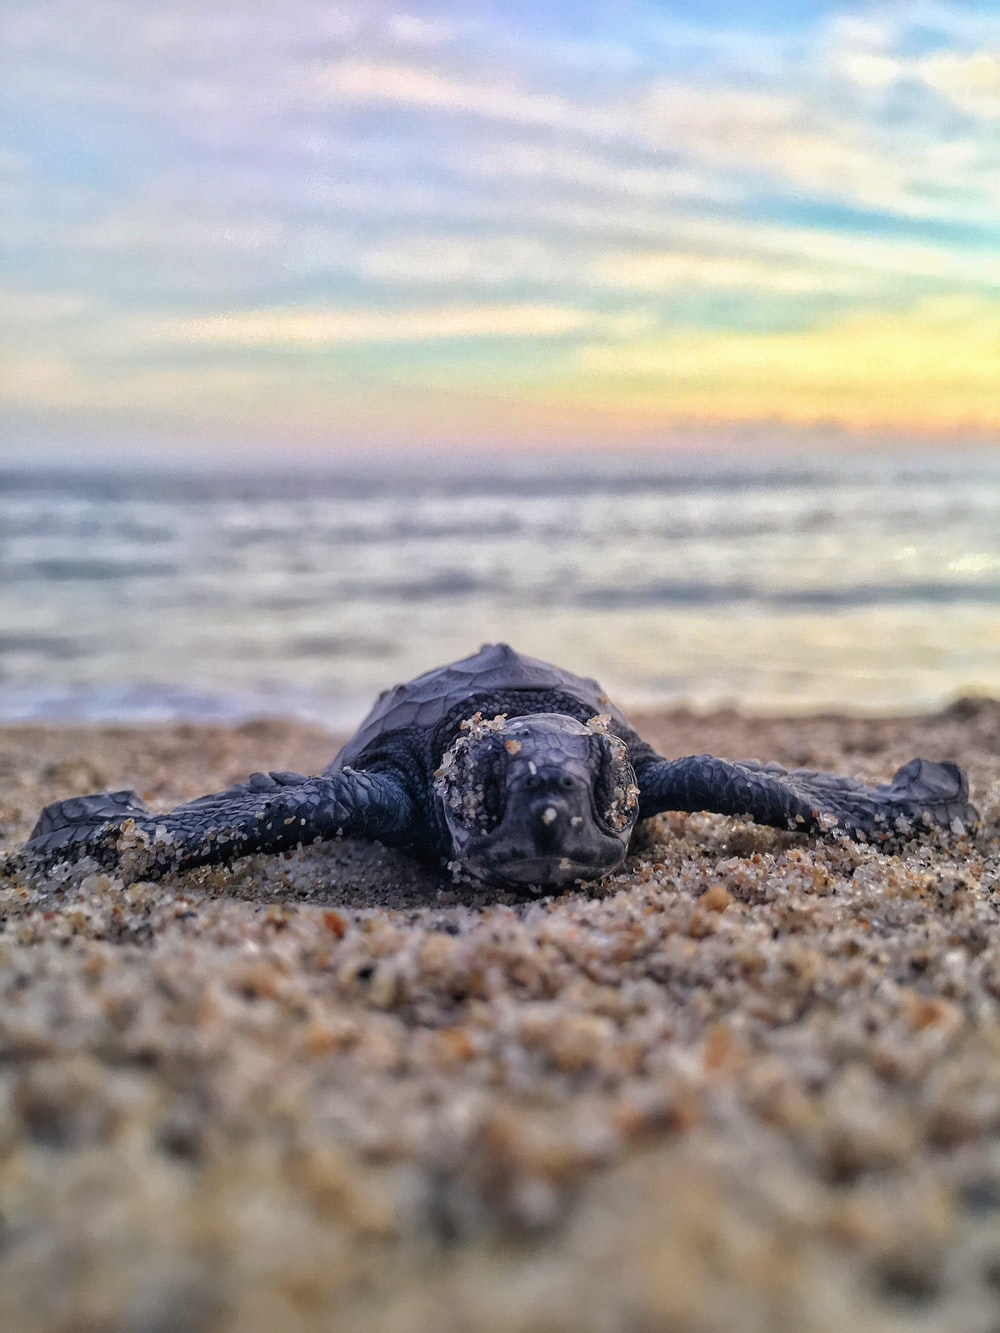 500 Baby Sea Turtle Pictures [HD] Download Images on Unsplash 1000x1333